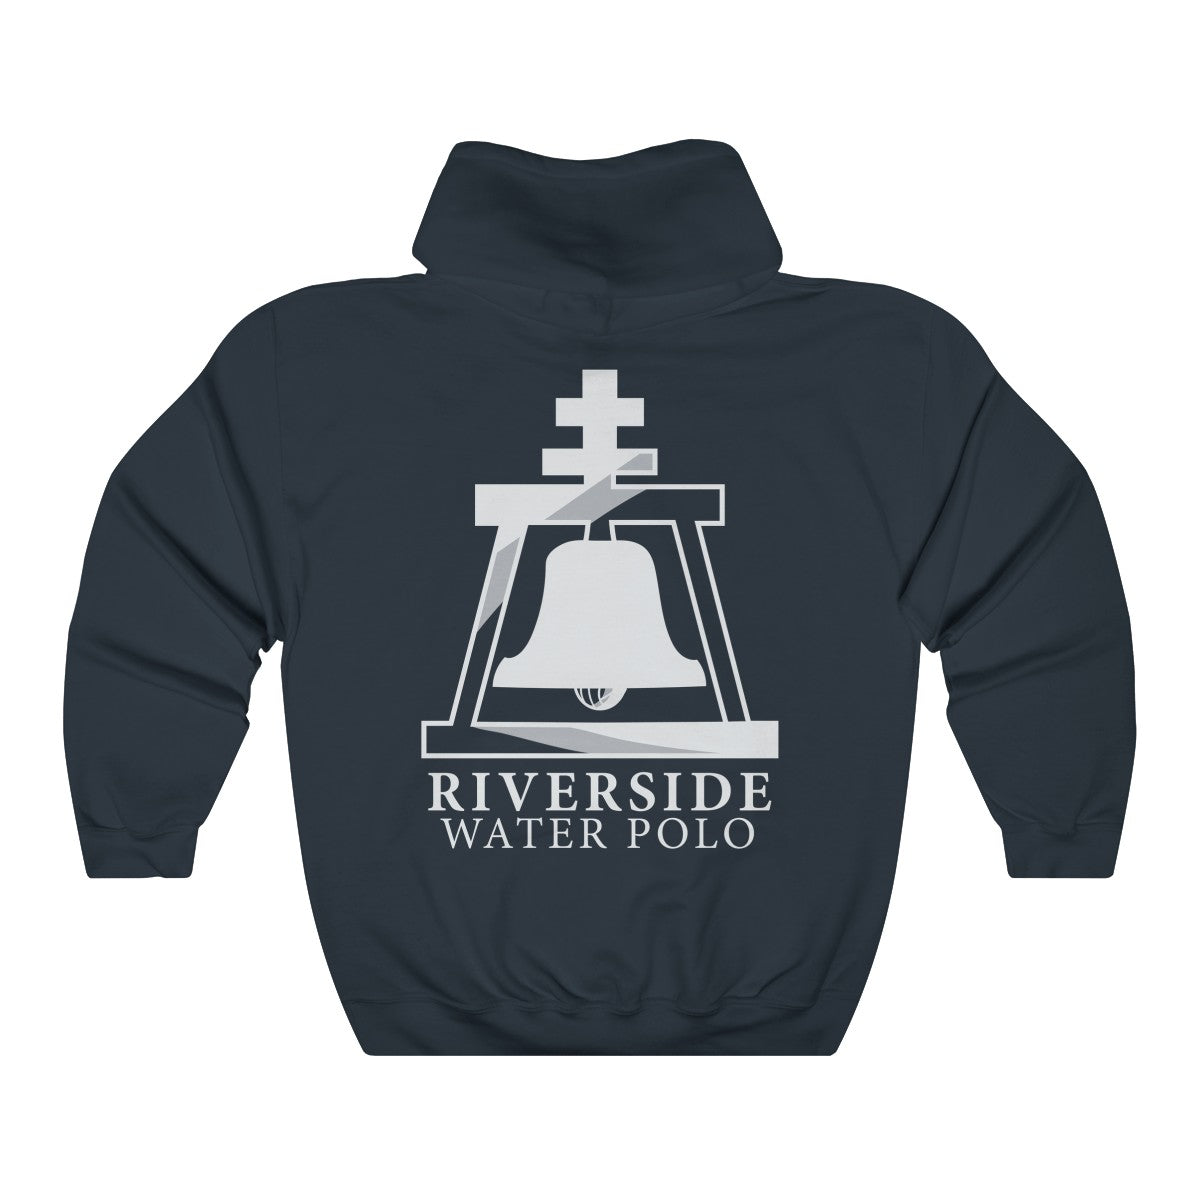 Riverside Water Polo Unisex Heavy Blend™ Hooded Sweatshirt